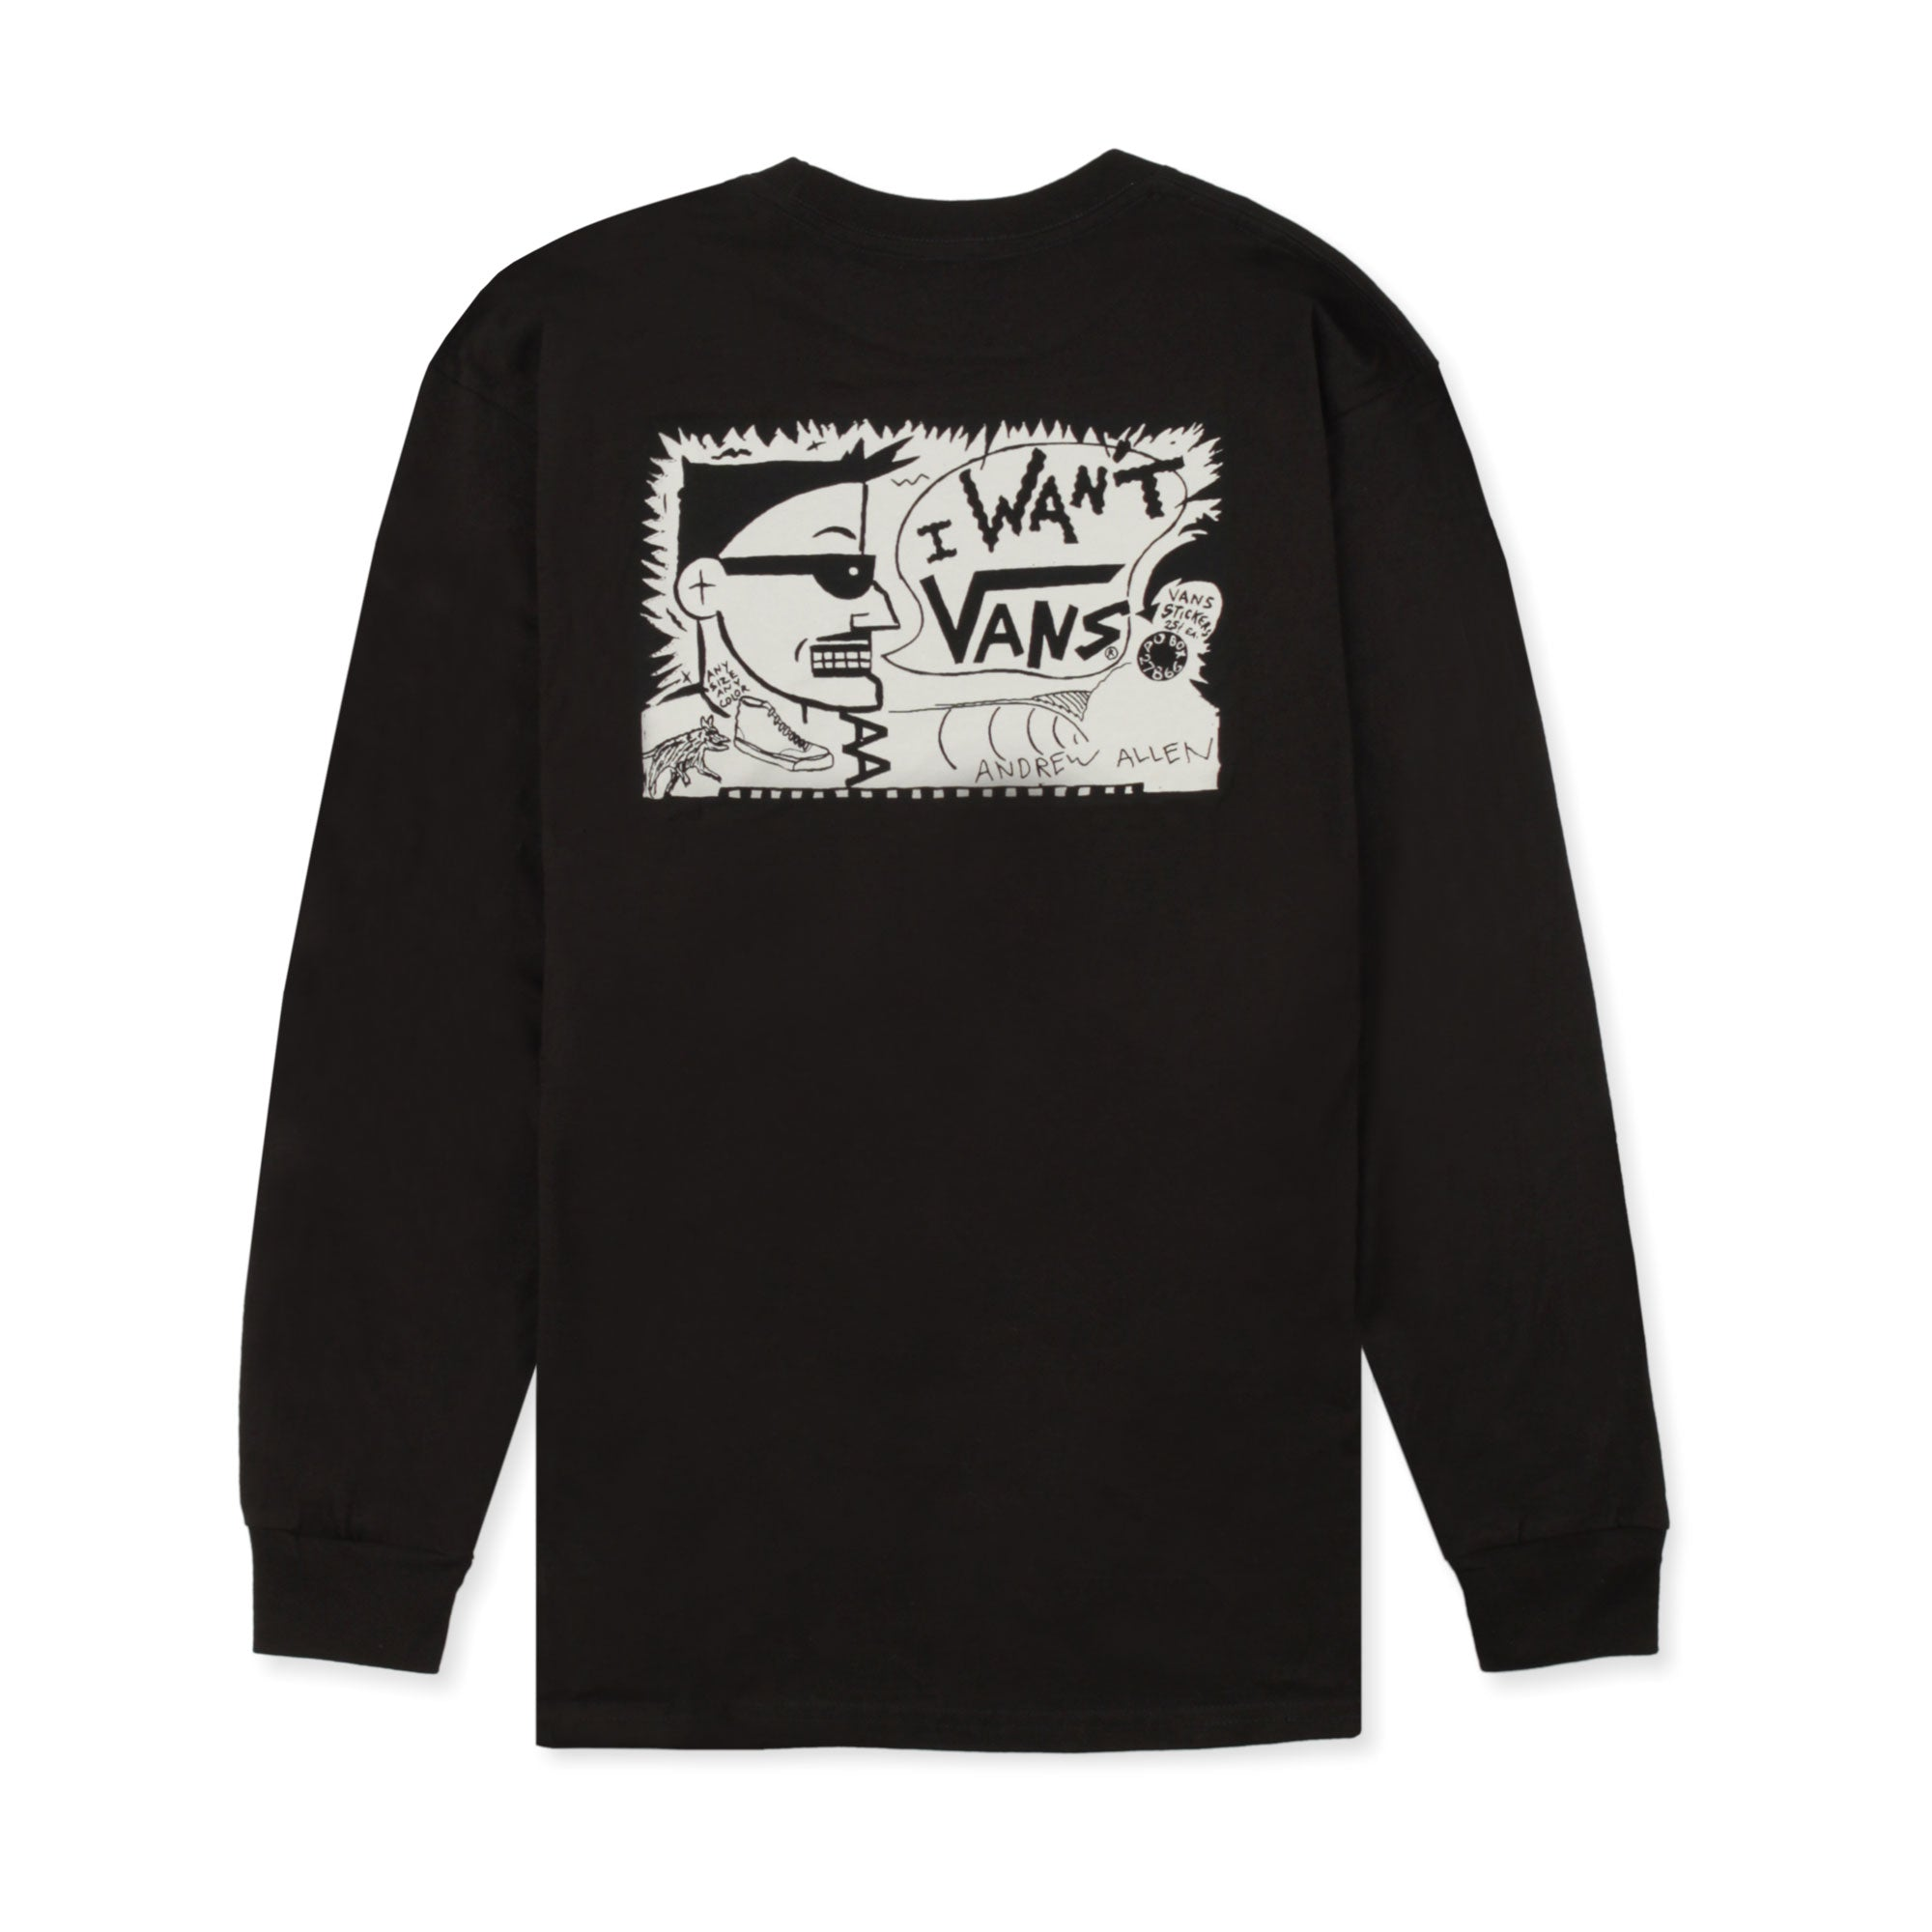 Vans X AA Hockey Longsleeve Tee Product Photo #2